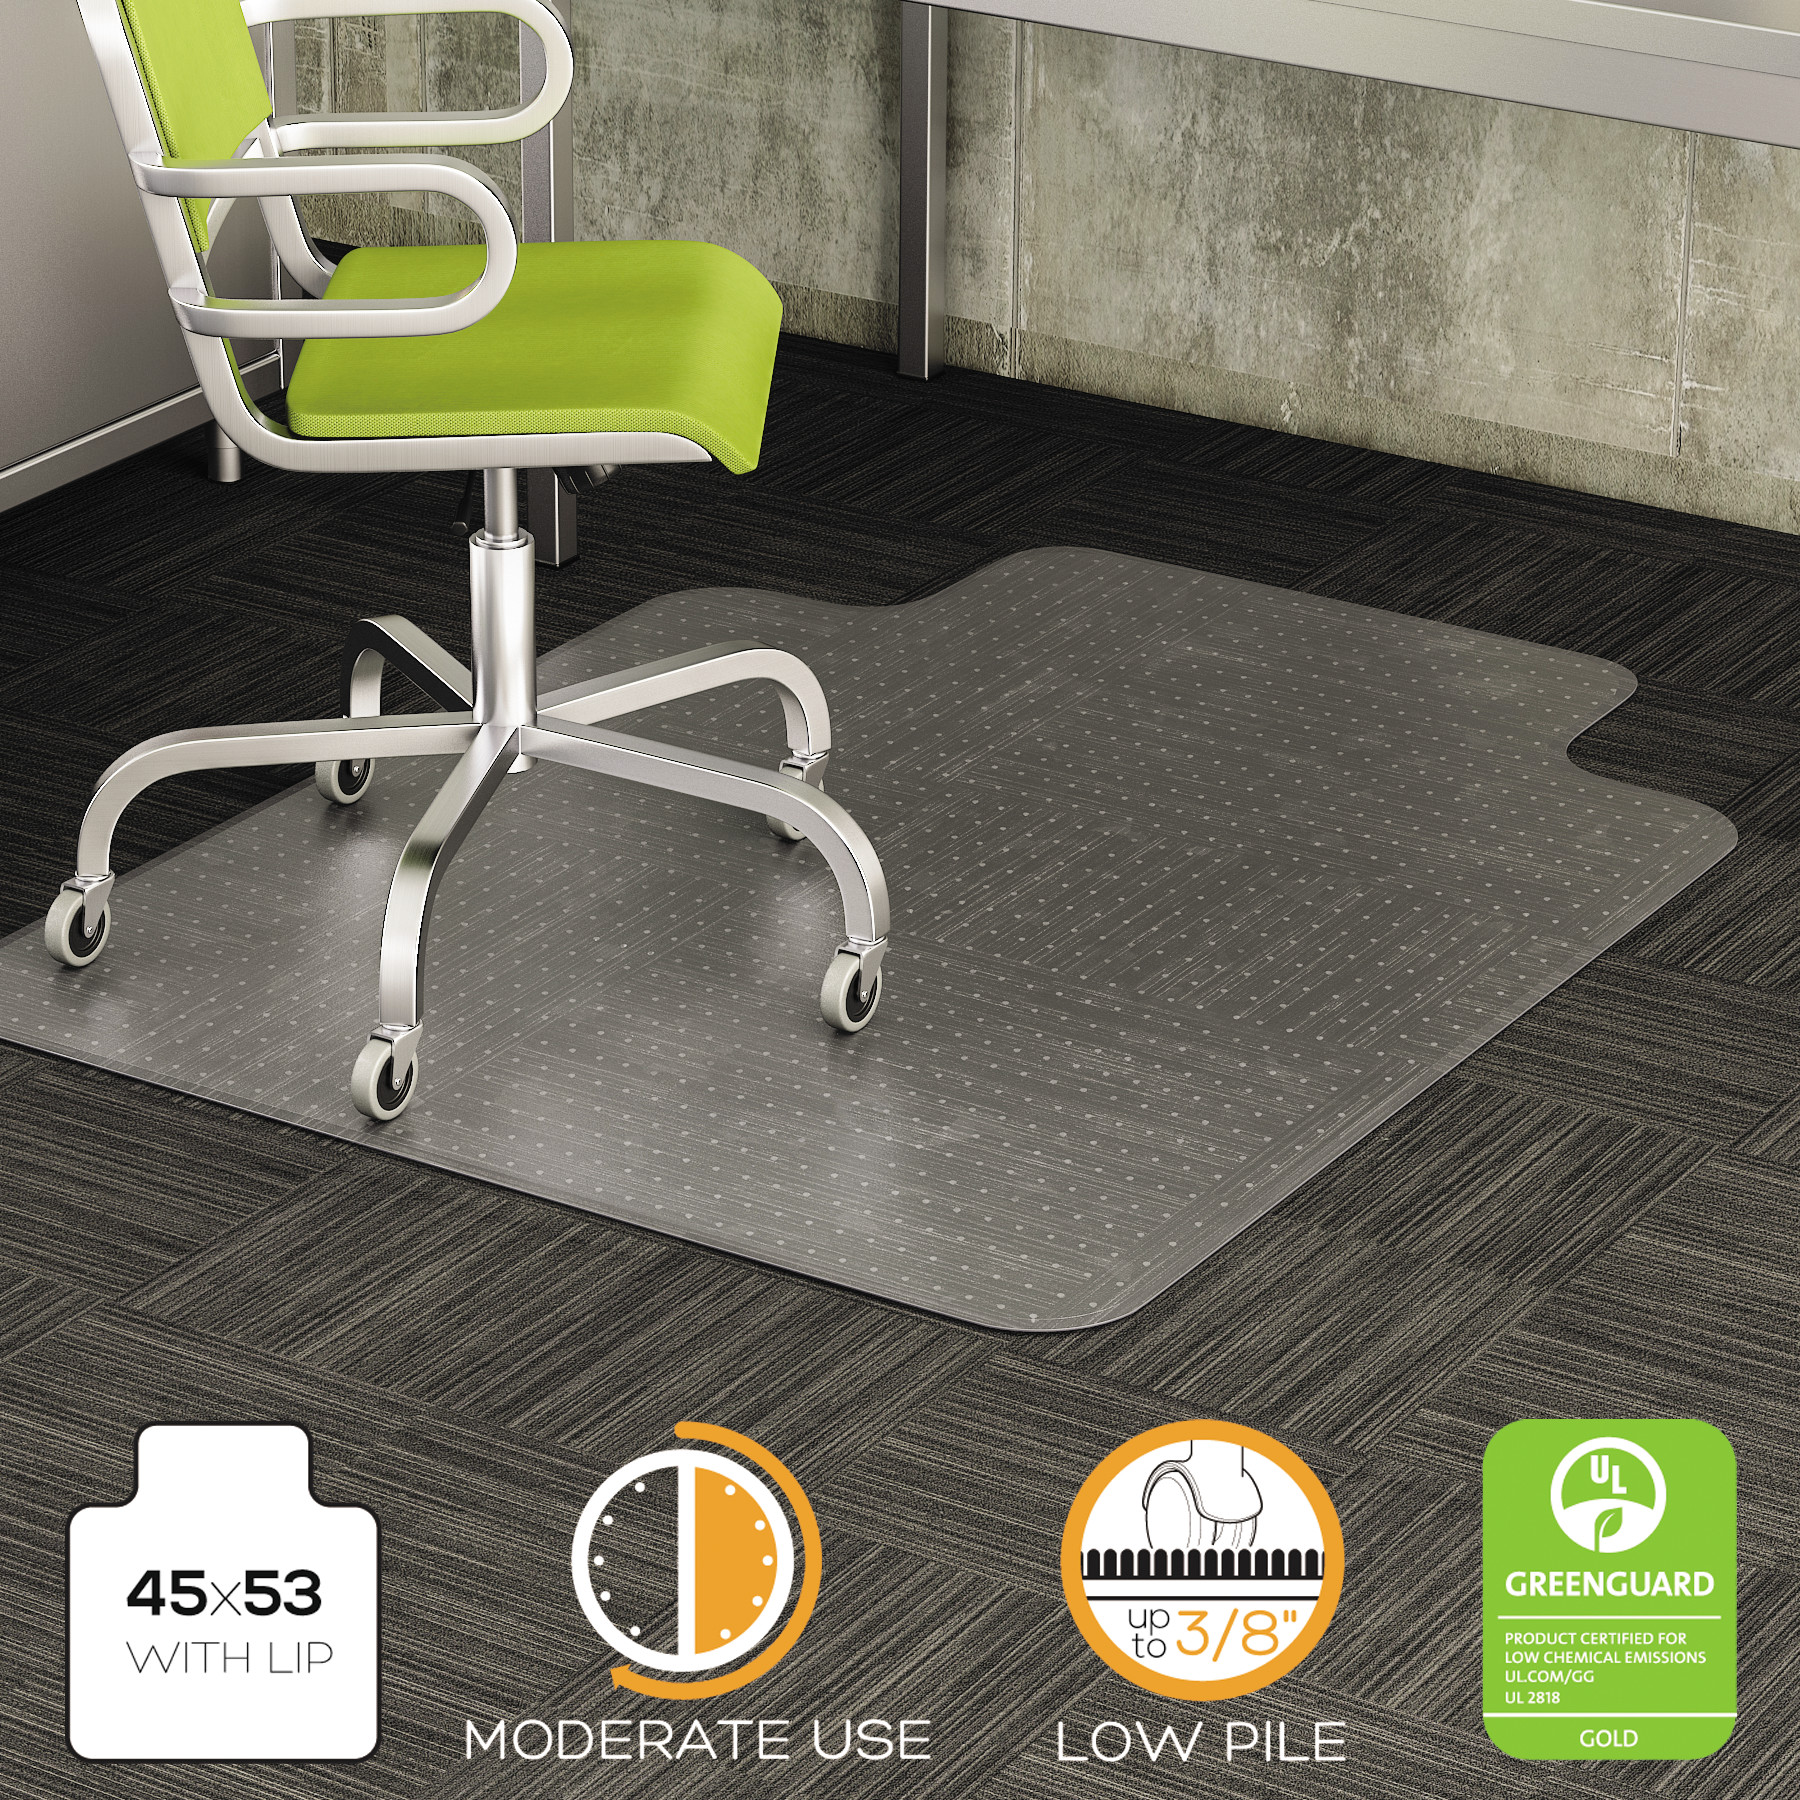 deflecto duramat moderate use chair mat for low pile carpet